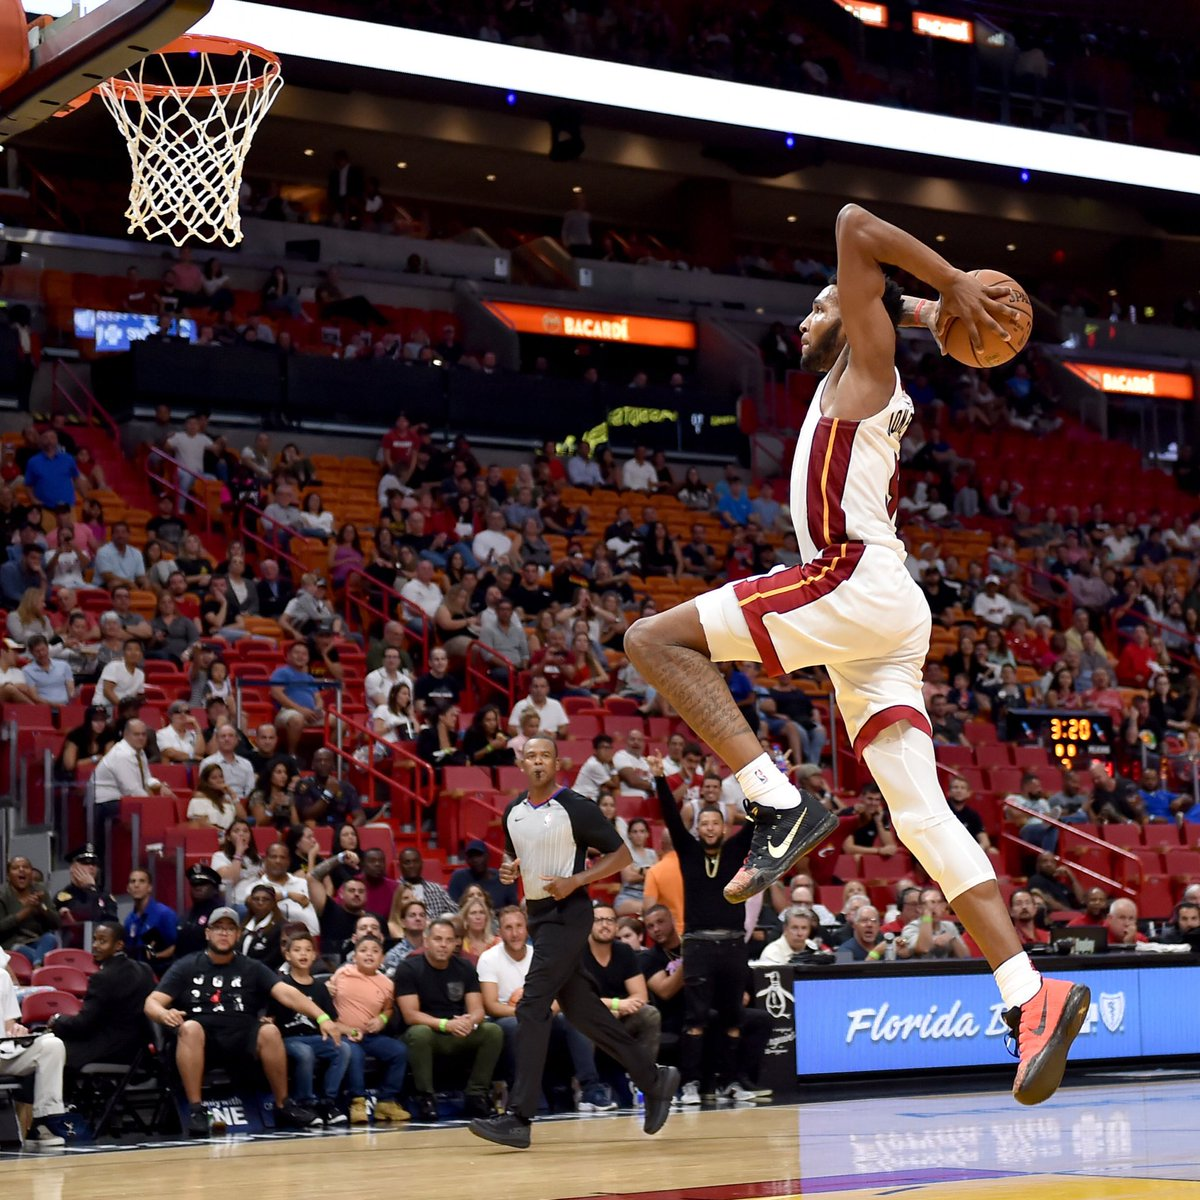 solewatch: @therea1djones takes flight in the \